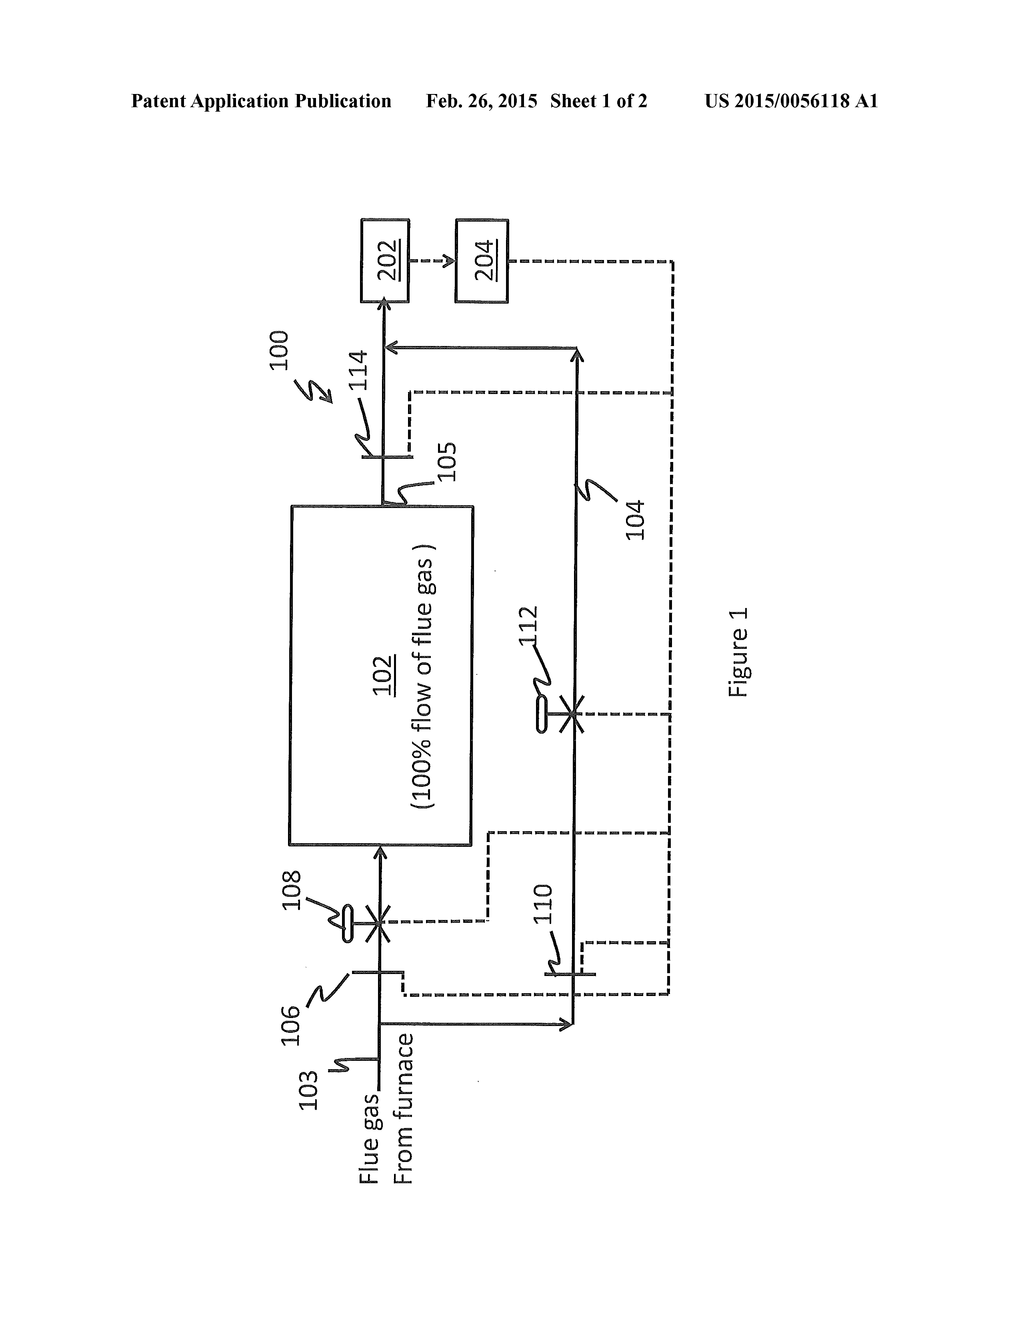 Flue Gas Stream Bypass During Selective Catalytic Reduction In A Power Plant Schematic Diagram And Image 02